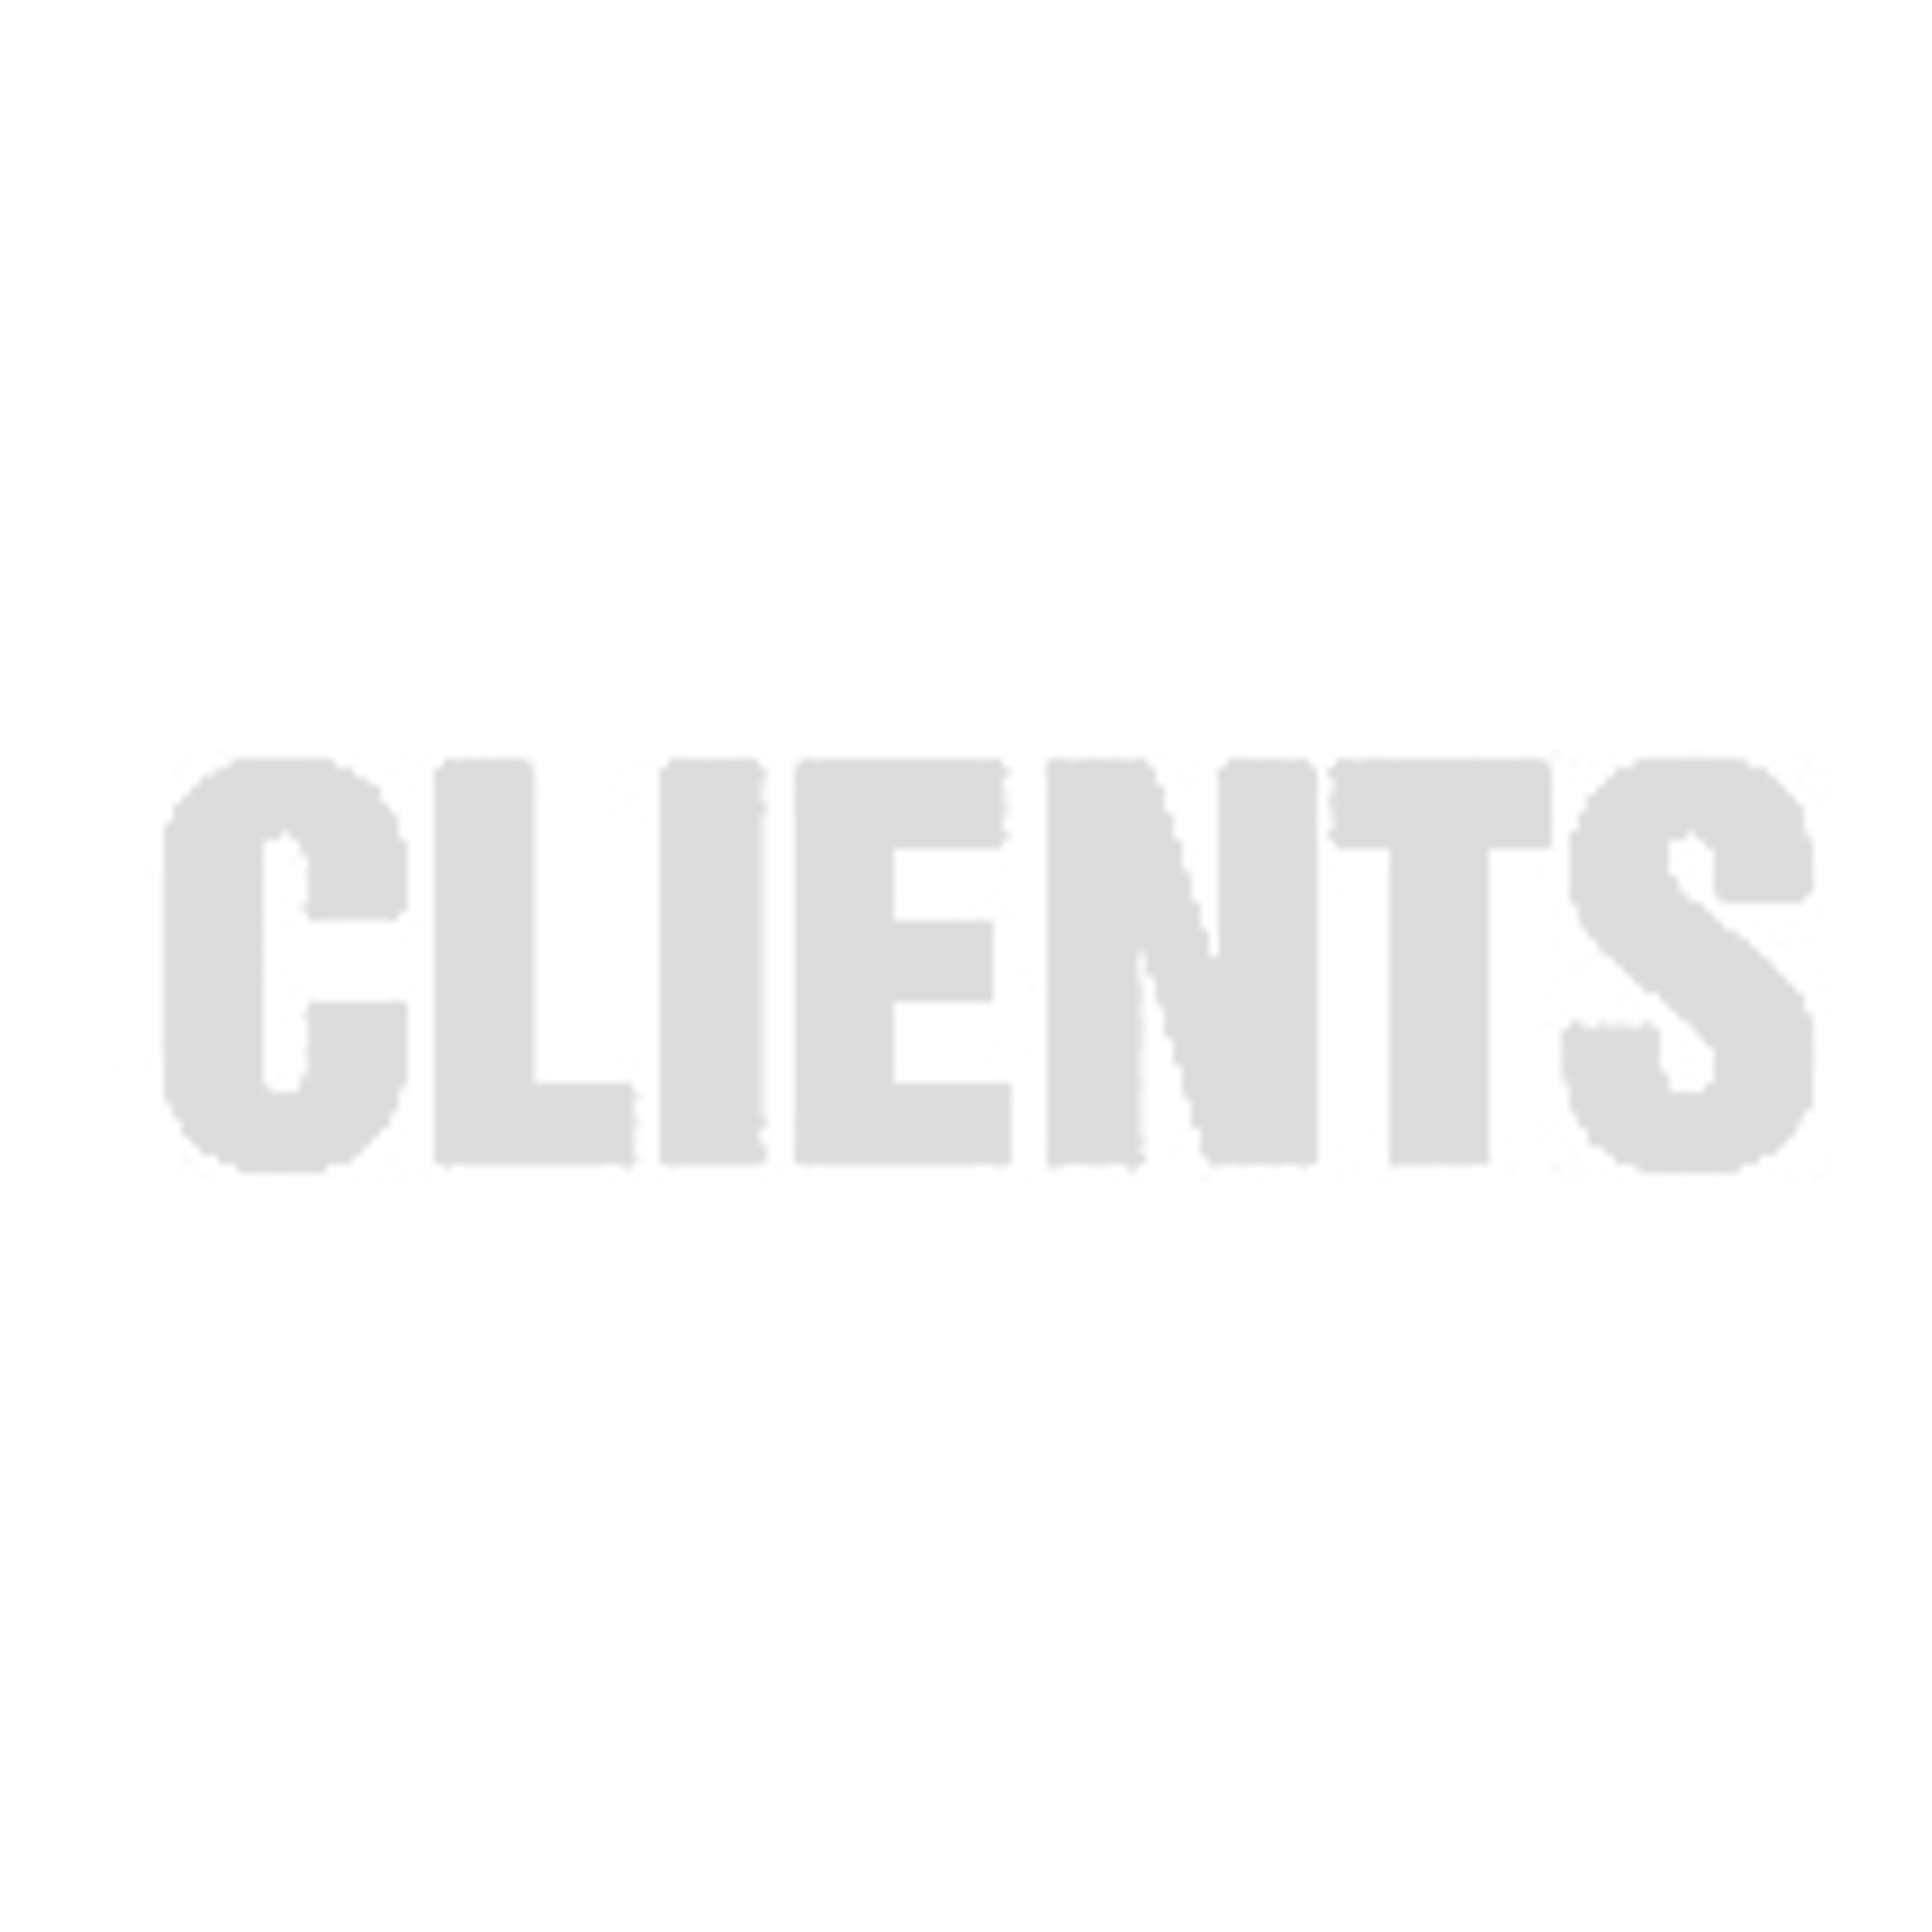 CLIENTS_GRAY.png